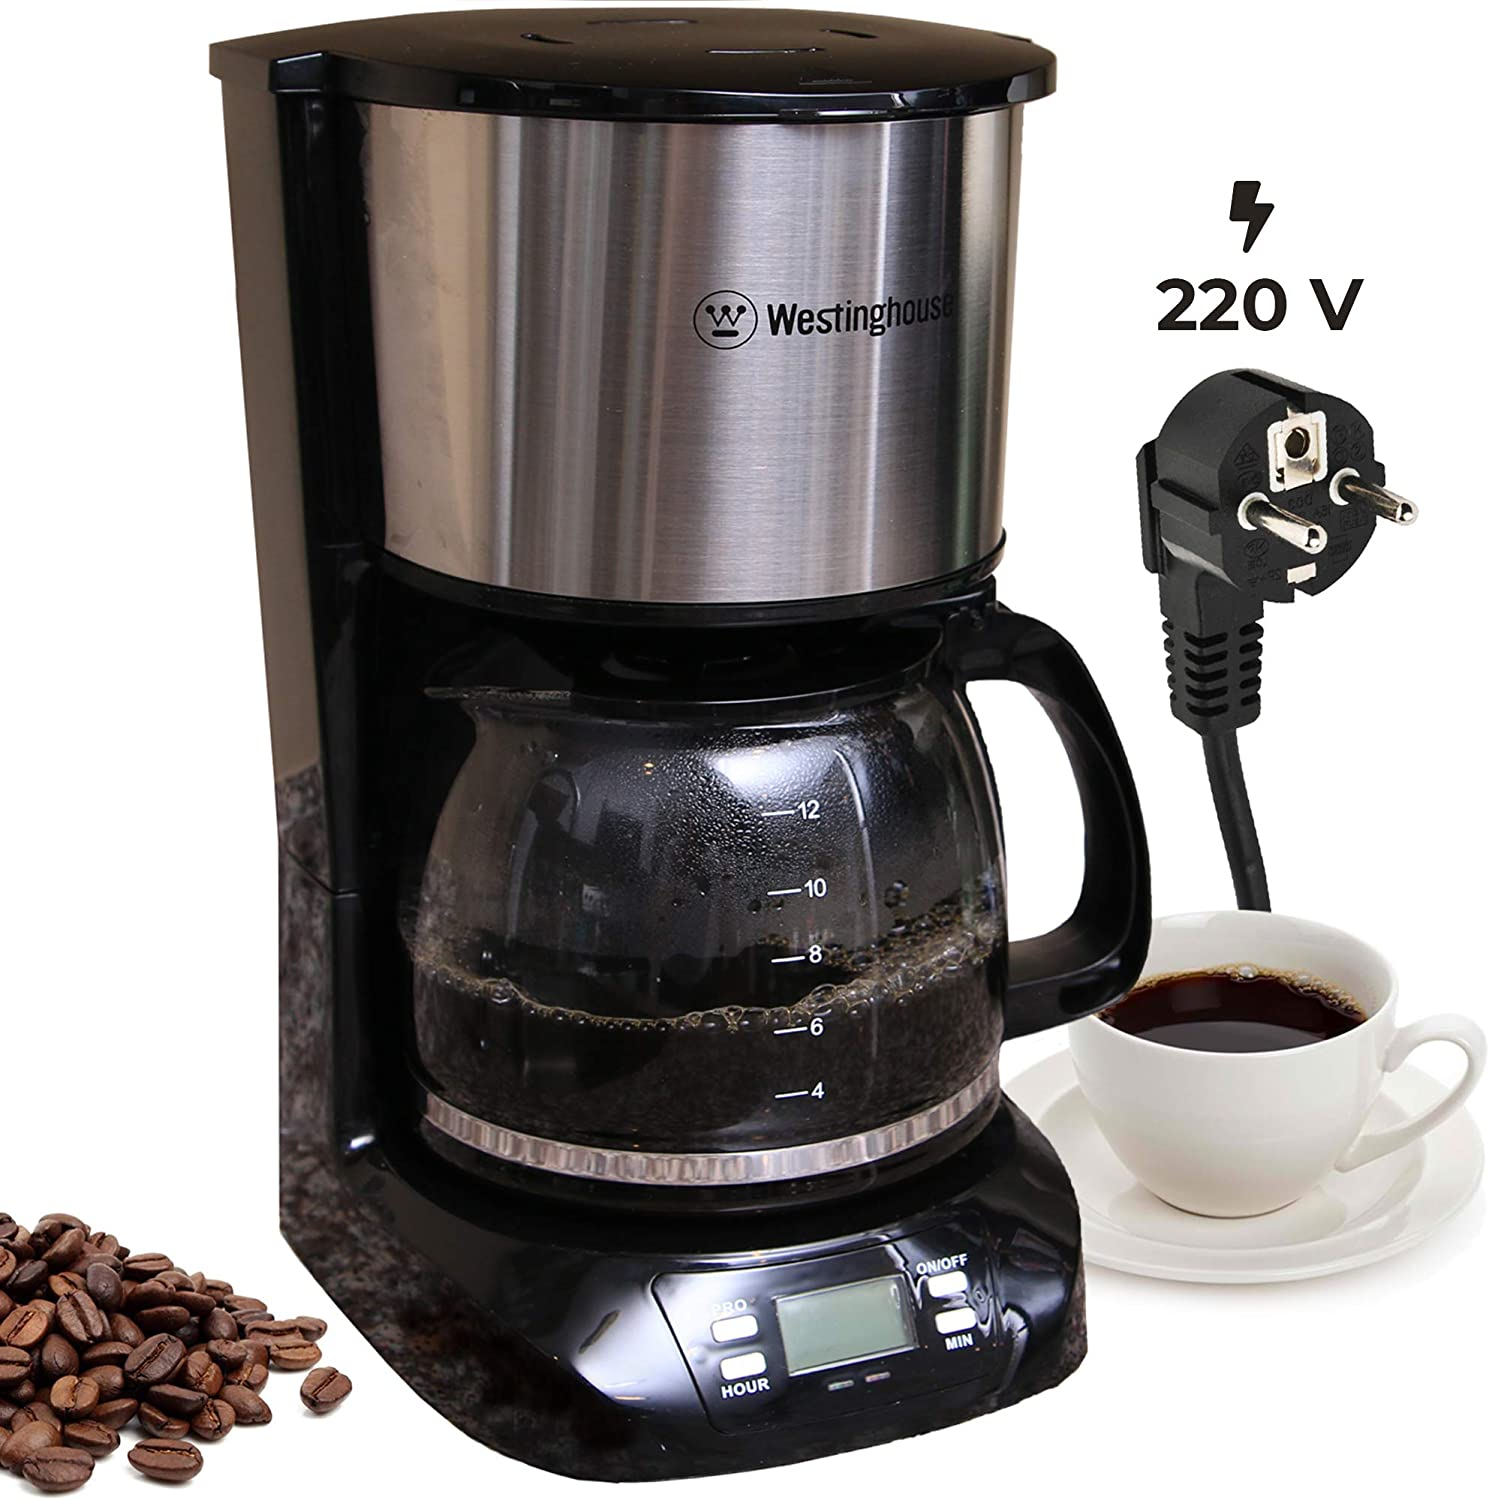 Westinghouse 220 volts coffee maker 220v 240 volt Digital Programmable Coffee Machine Permanent Filter Hot Plate NOT FOR USE IN USA